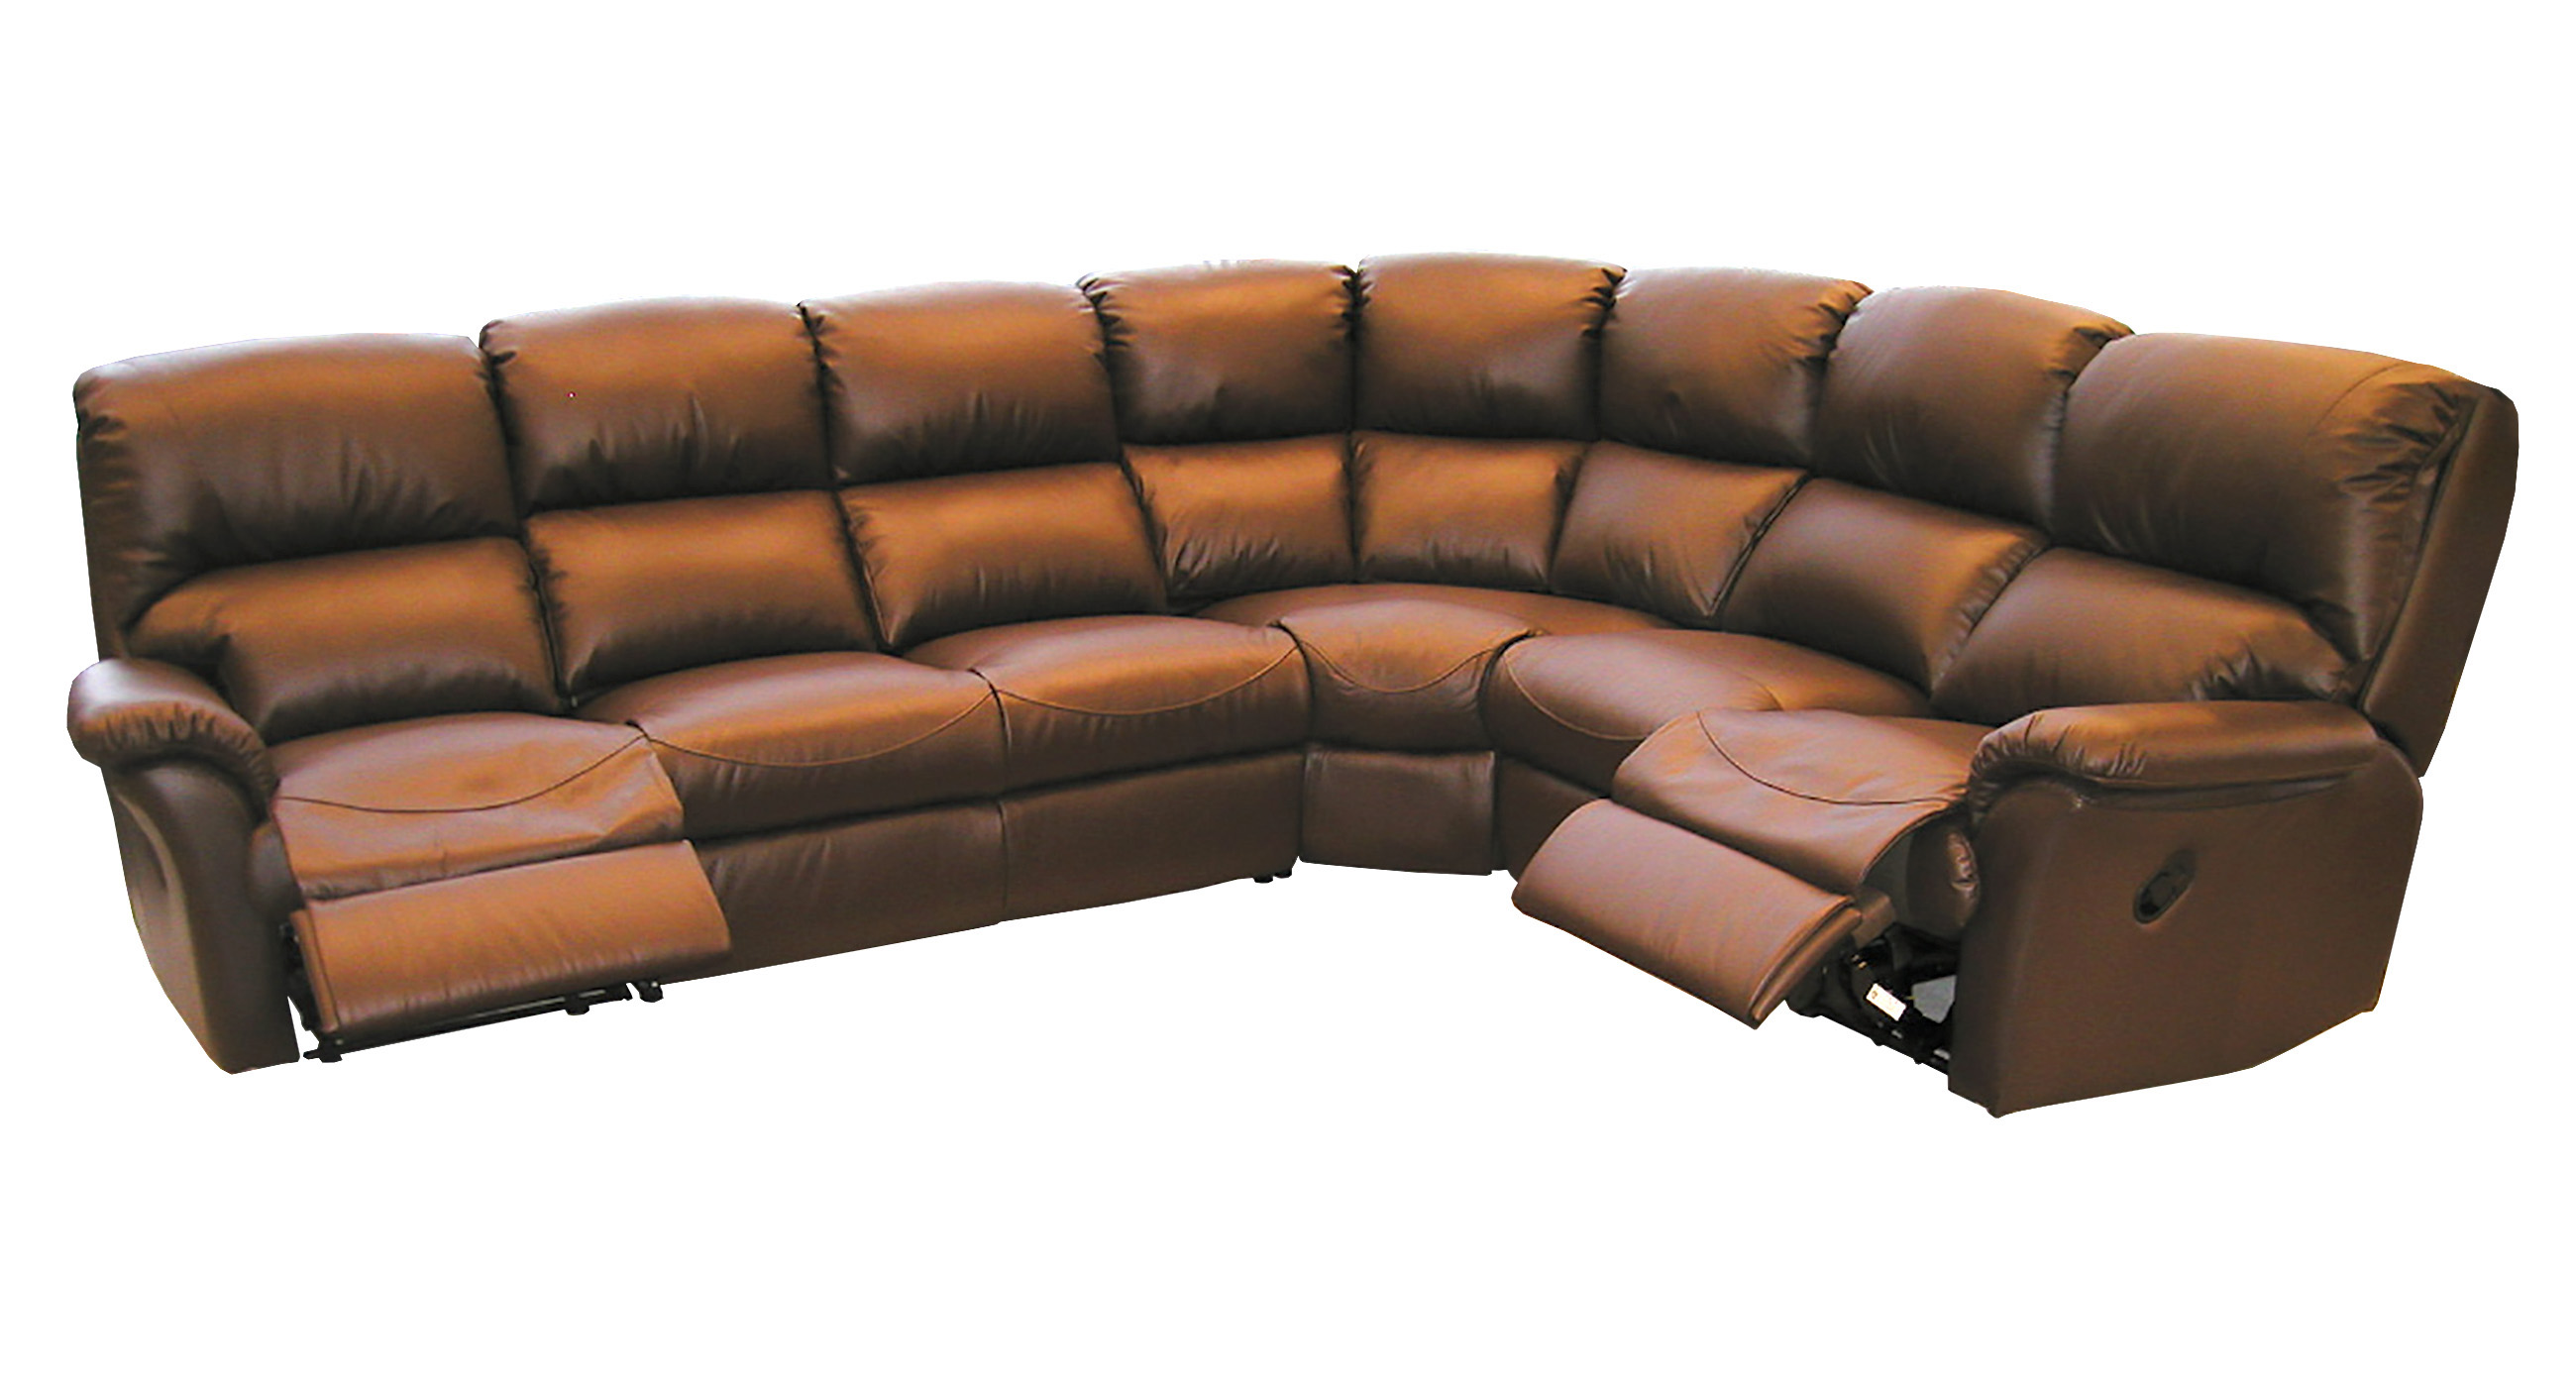 Mitcham Reclining Corner Sofa and Chairs